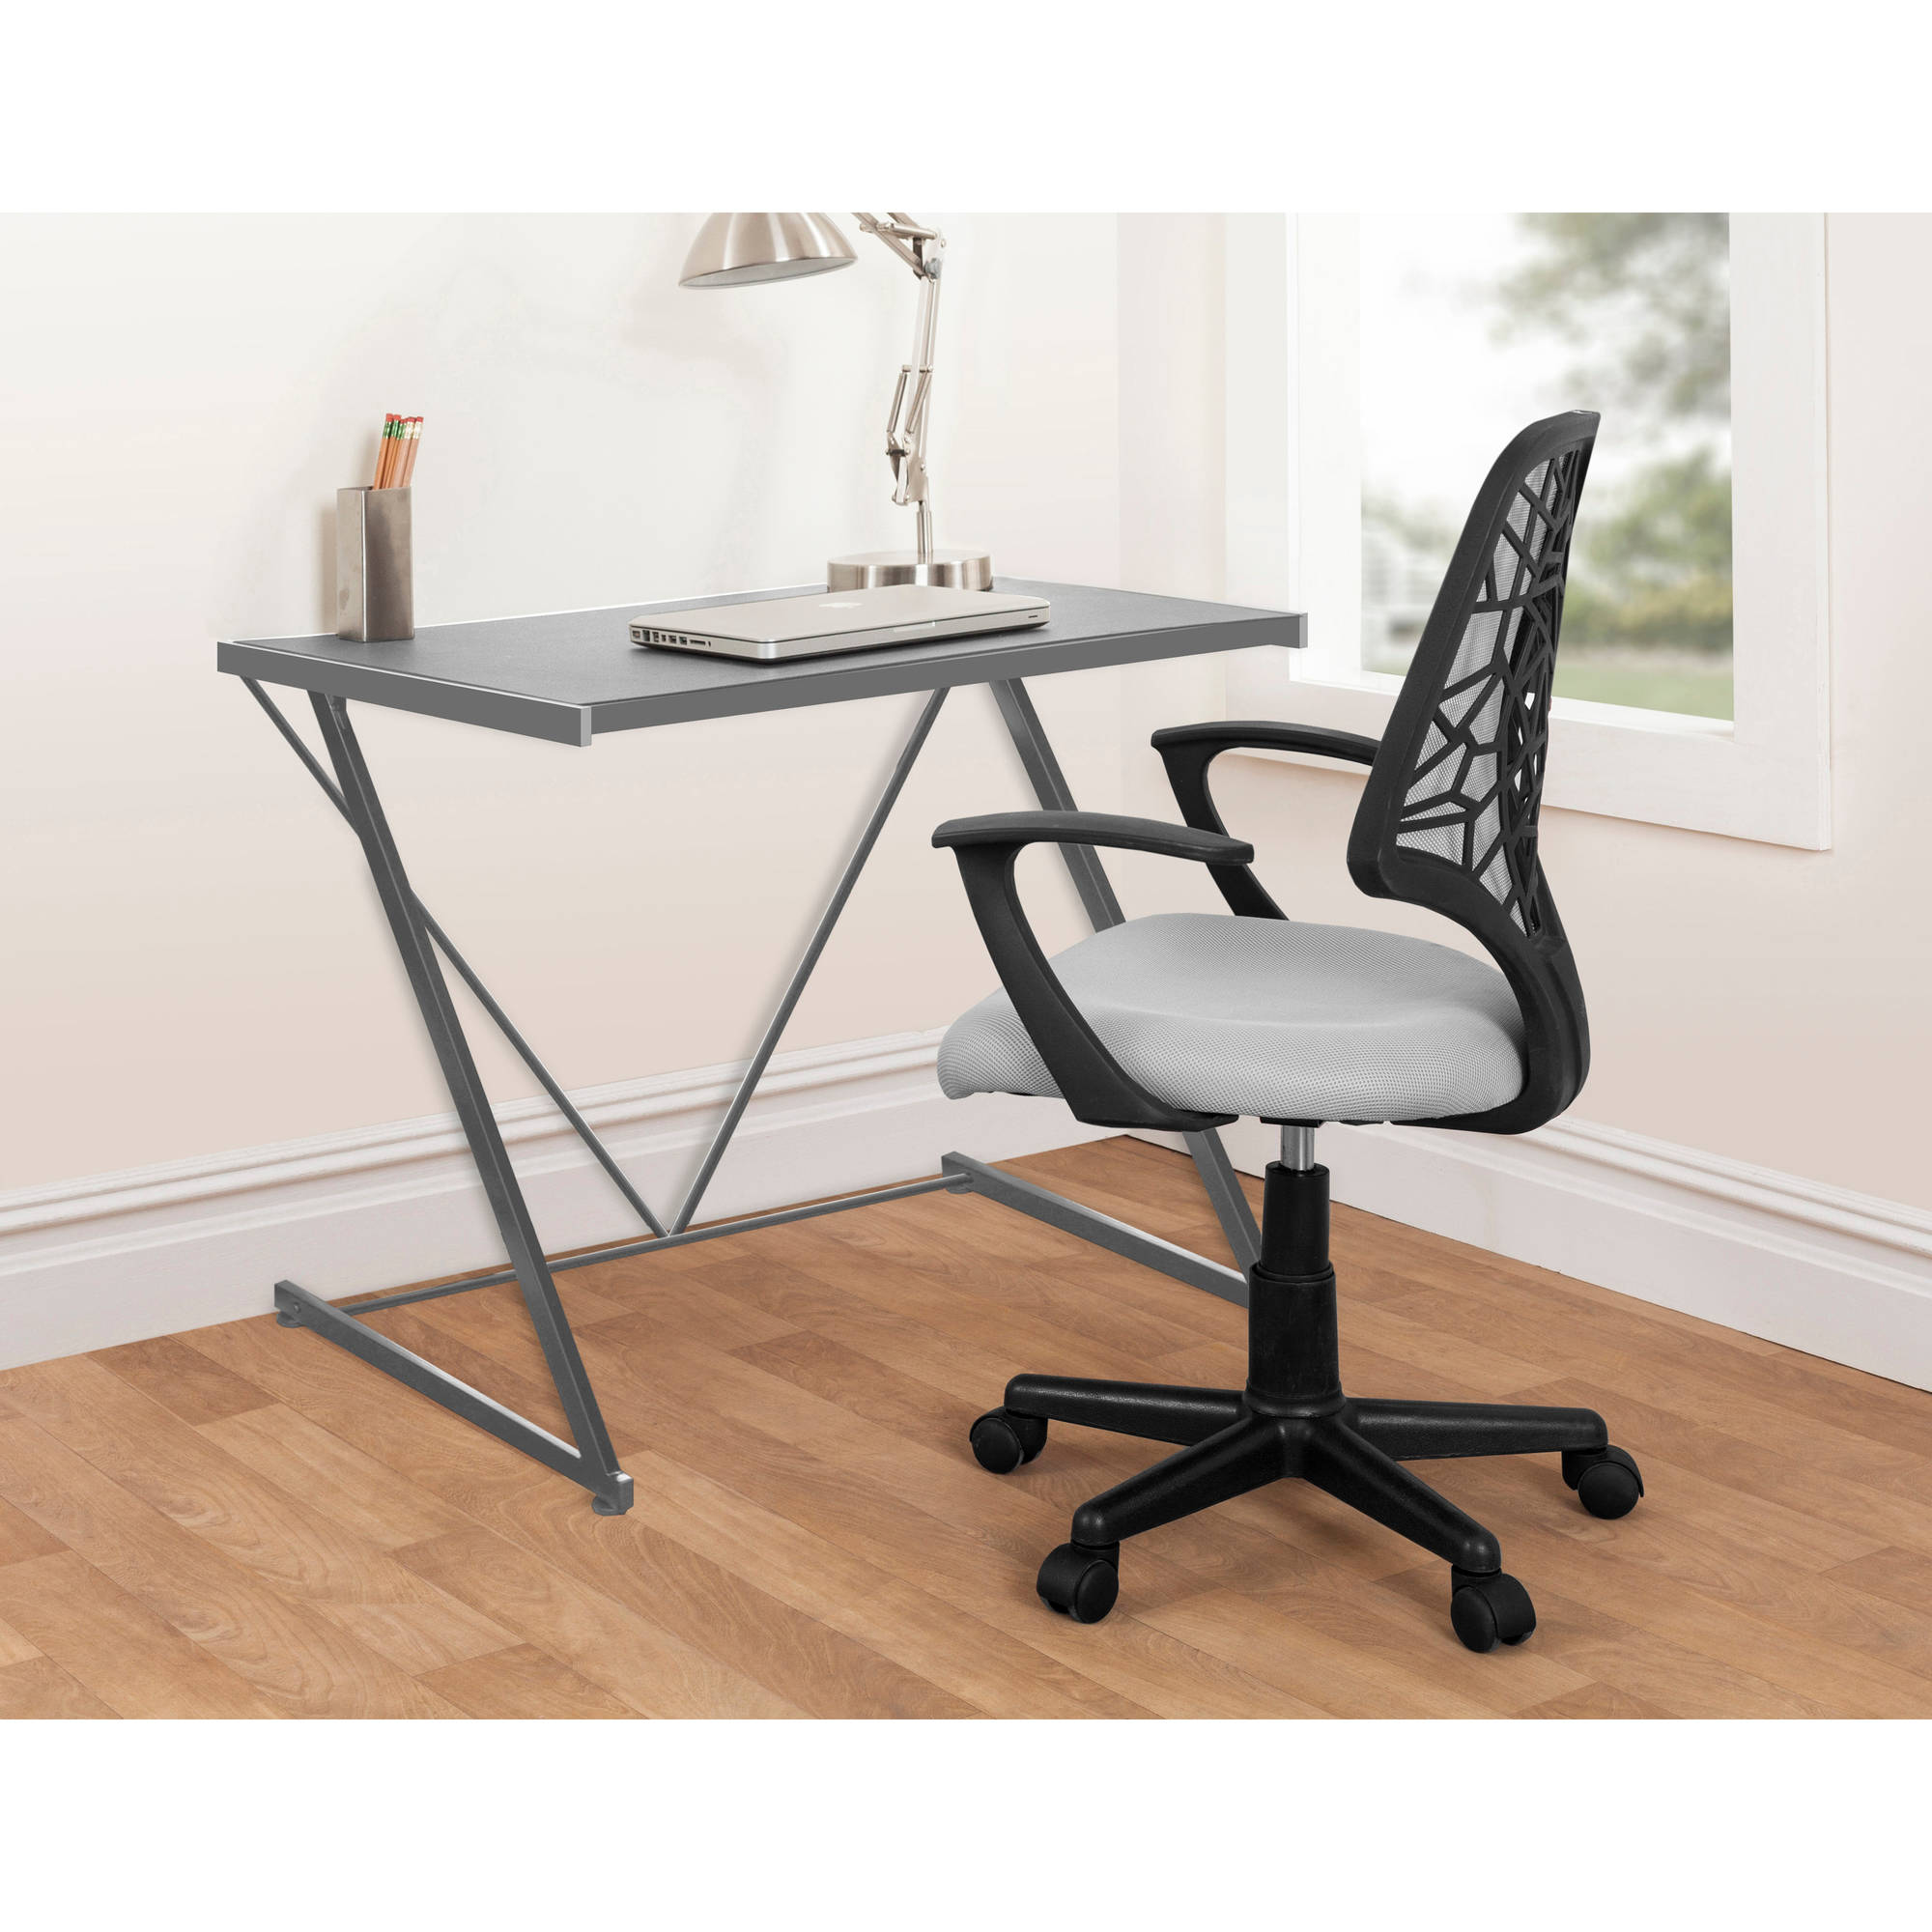 standing laminate uplift the adjustable desk height shop